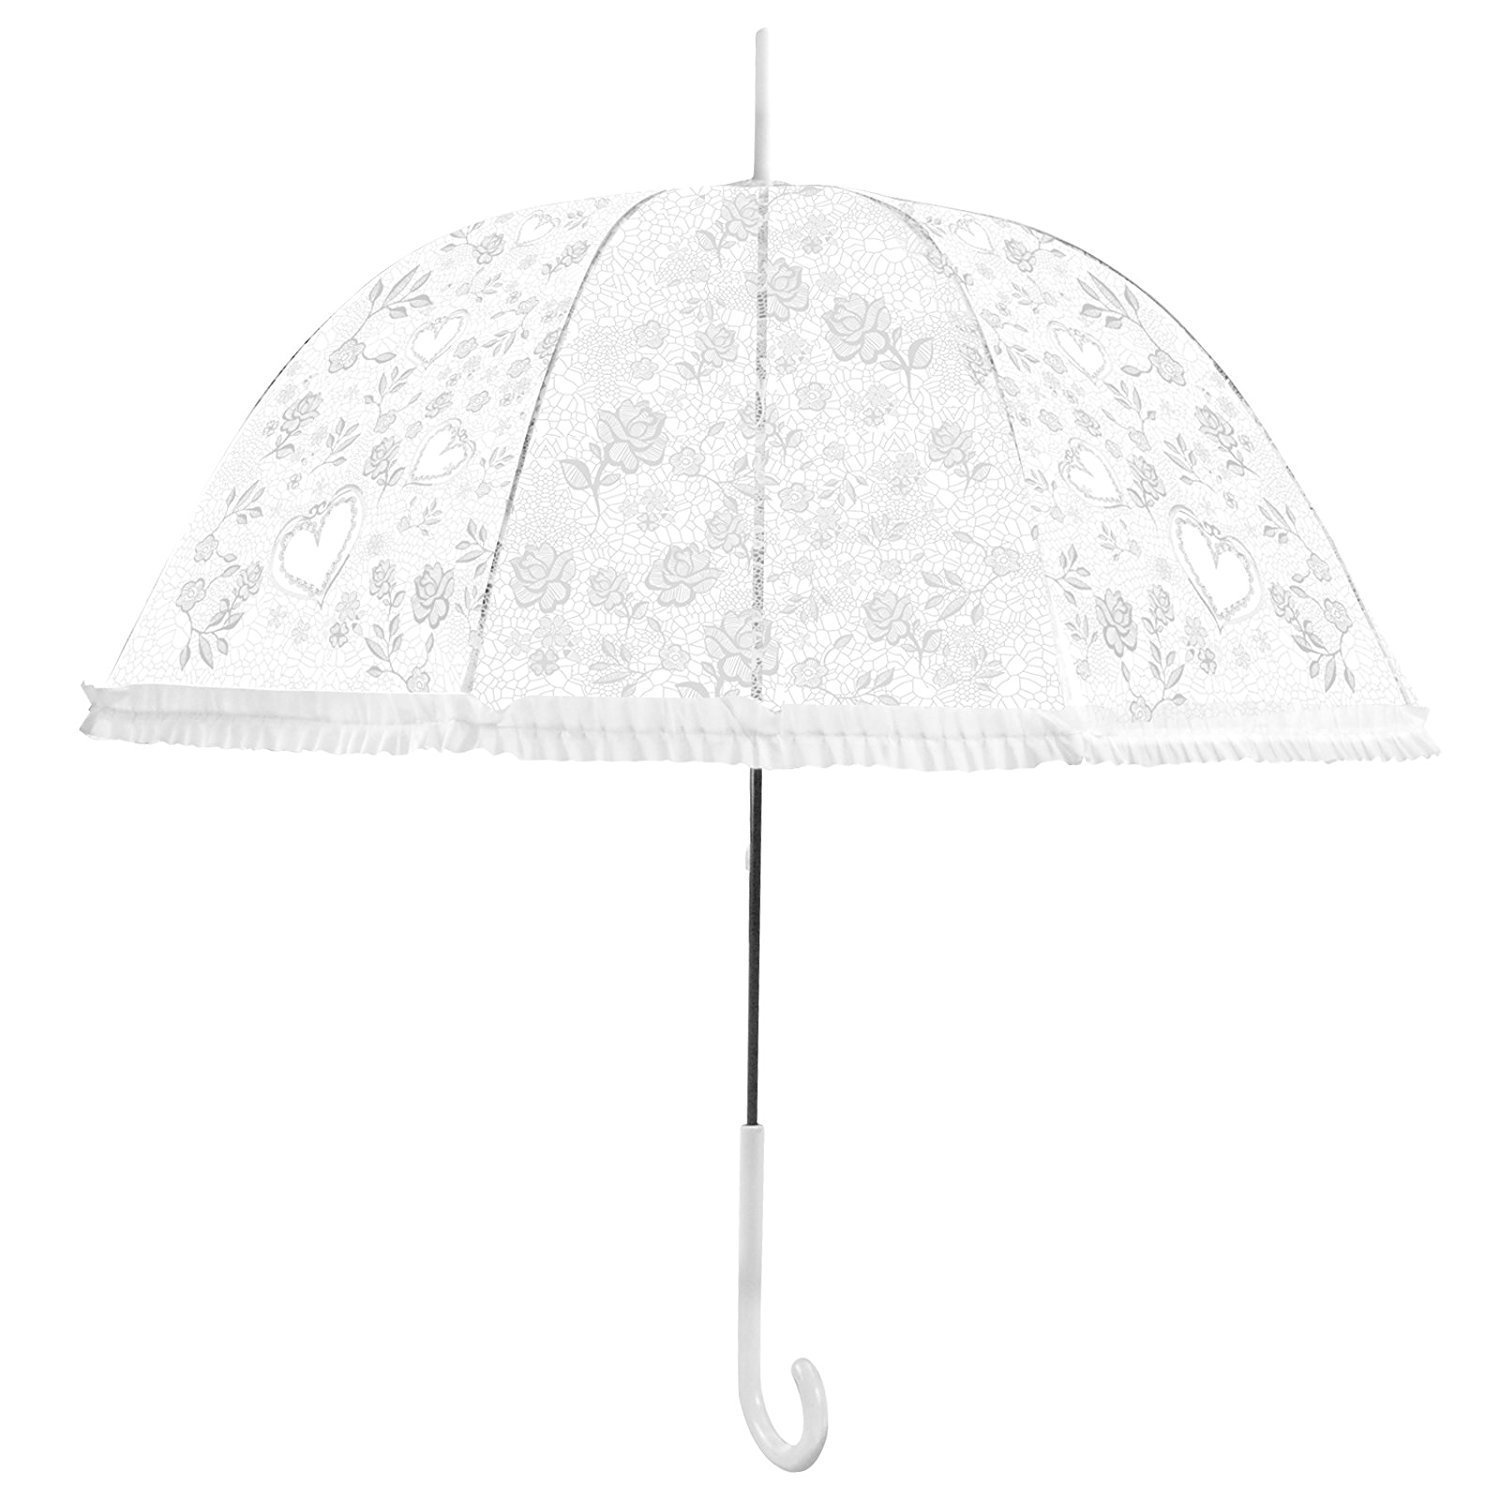 Becko Stick Umbrella / Clear Canopy Bubble Umbrella / Transparent Dome Shape Princess Style Rain Umbrella with Gradient J-handle for Wedding / Party / Camping (Black Edge)